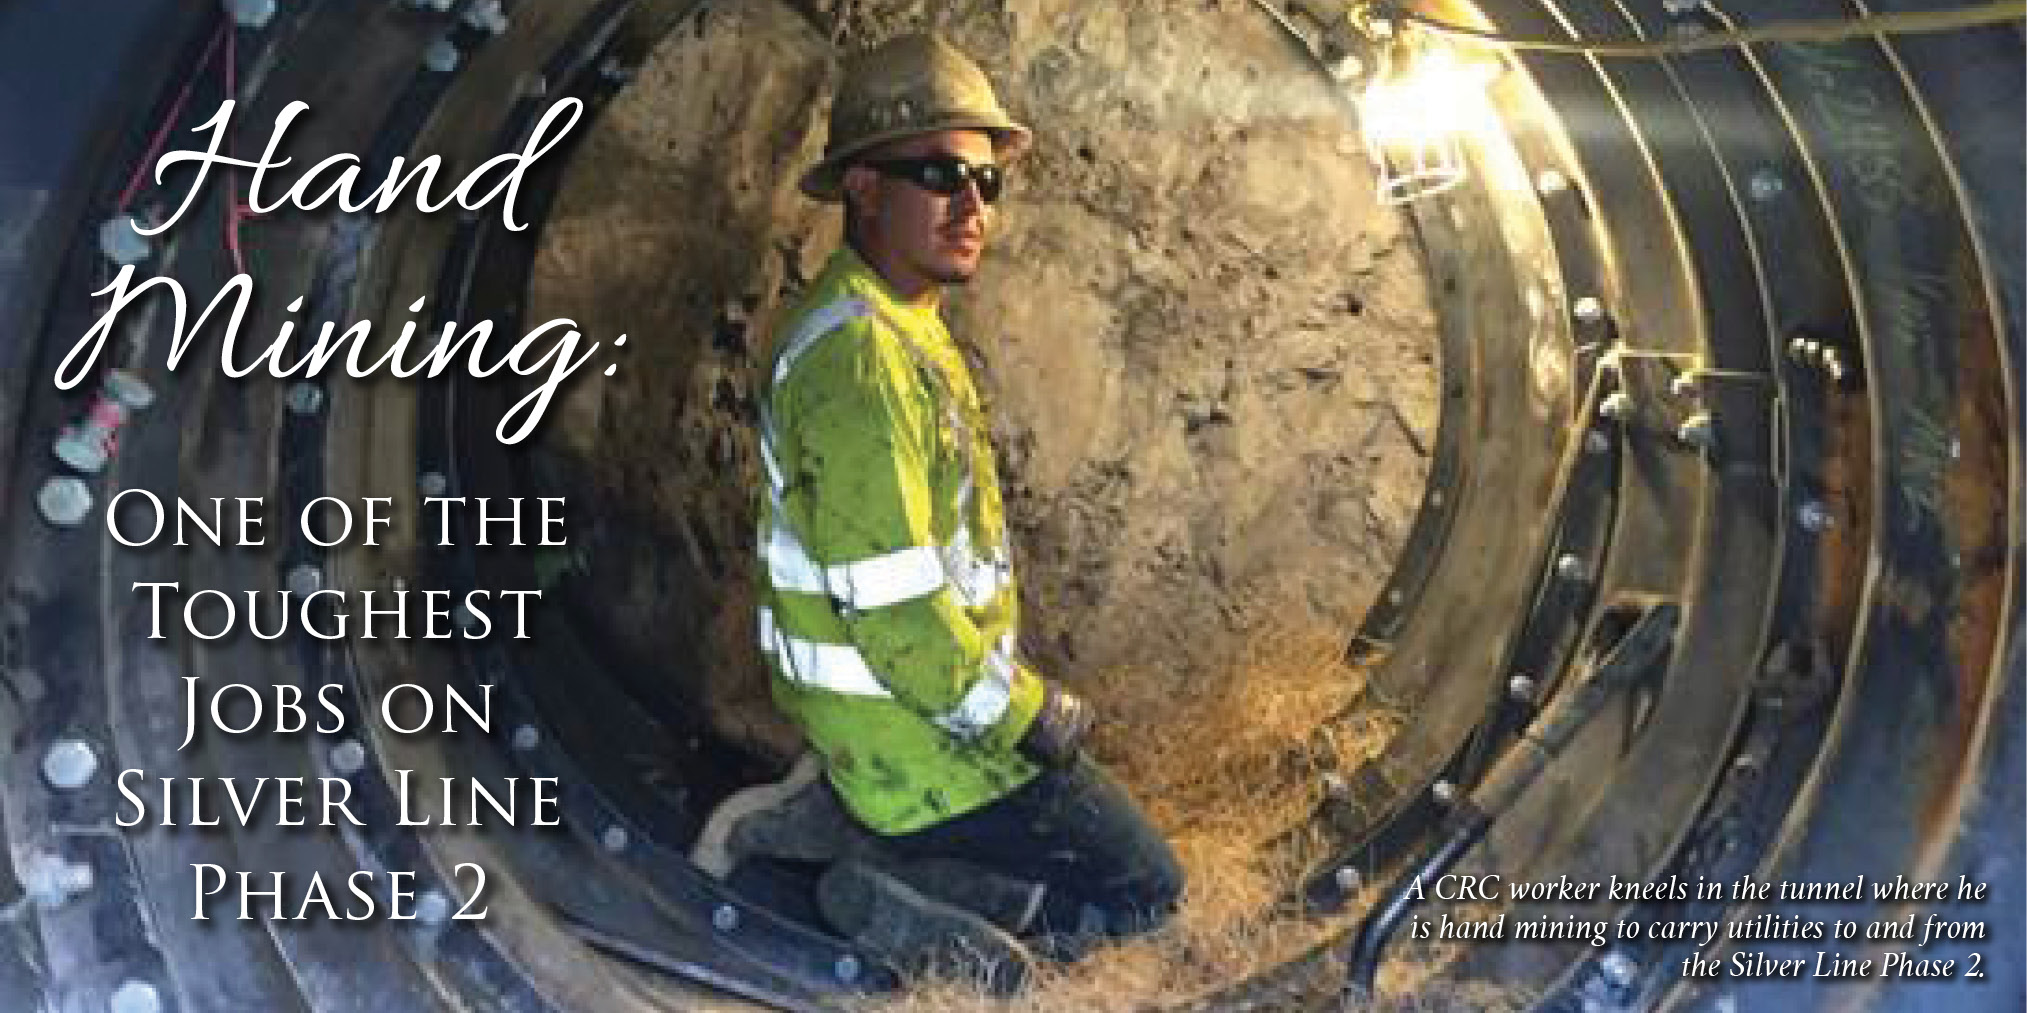 Hand Mining: One of the Toughest Jobs on Silver Line Phase 2